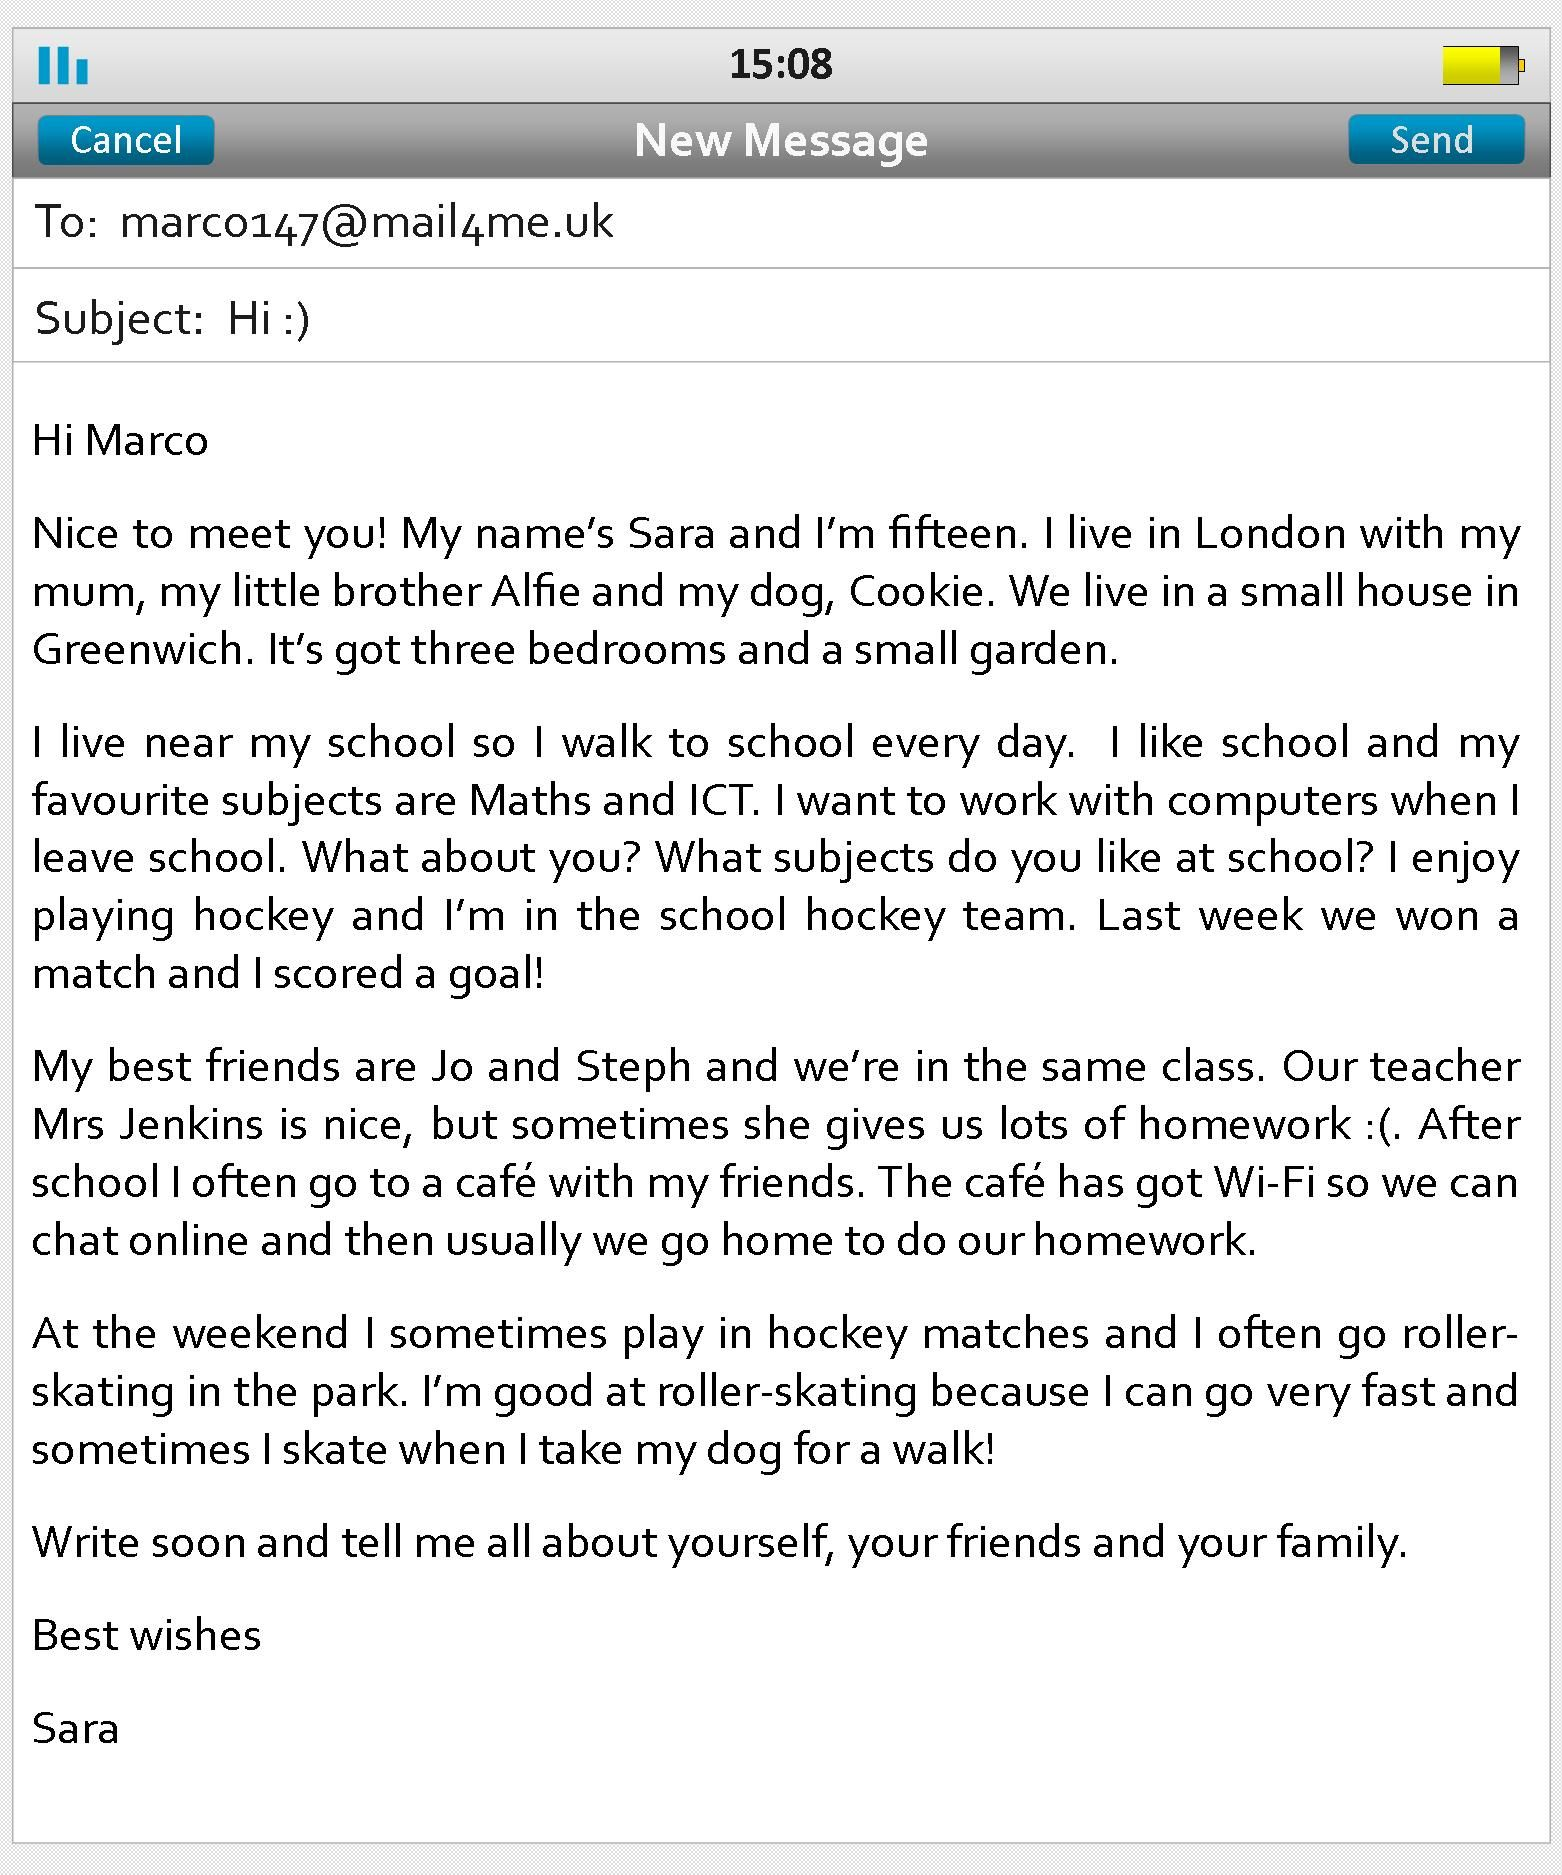 persuasive essays examples and samples essay picture stuff have a look at this email to a sara to her penfriend marco it